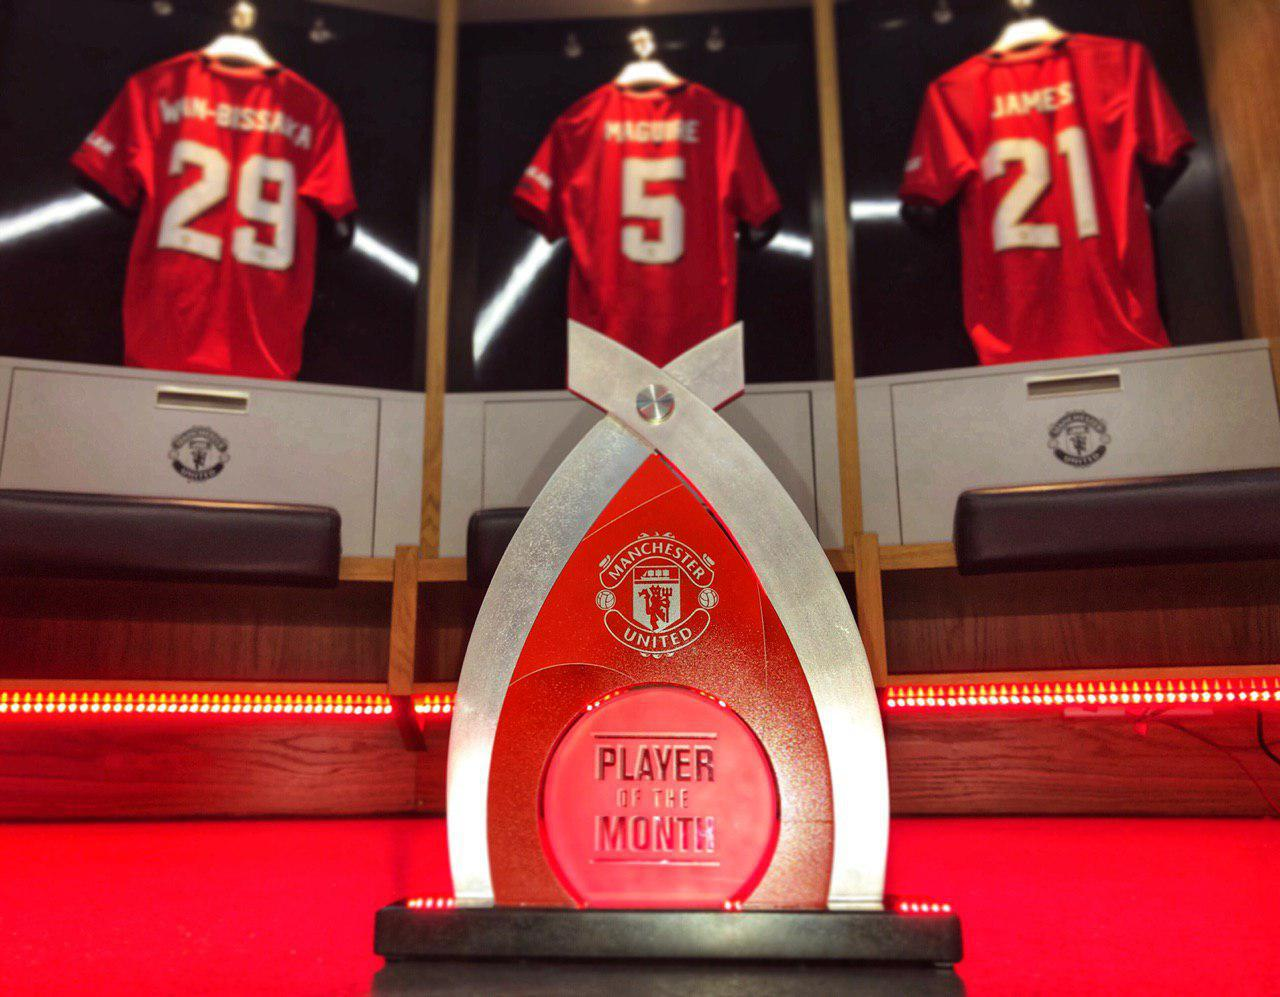 The Player of the Month trophy inside the home dressing room.,